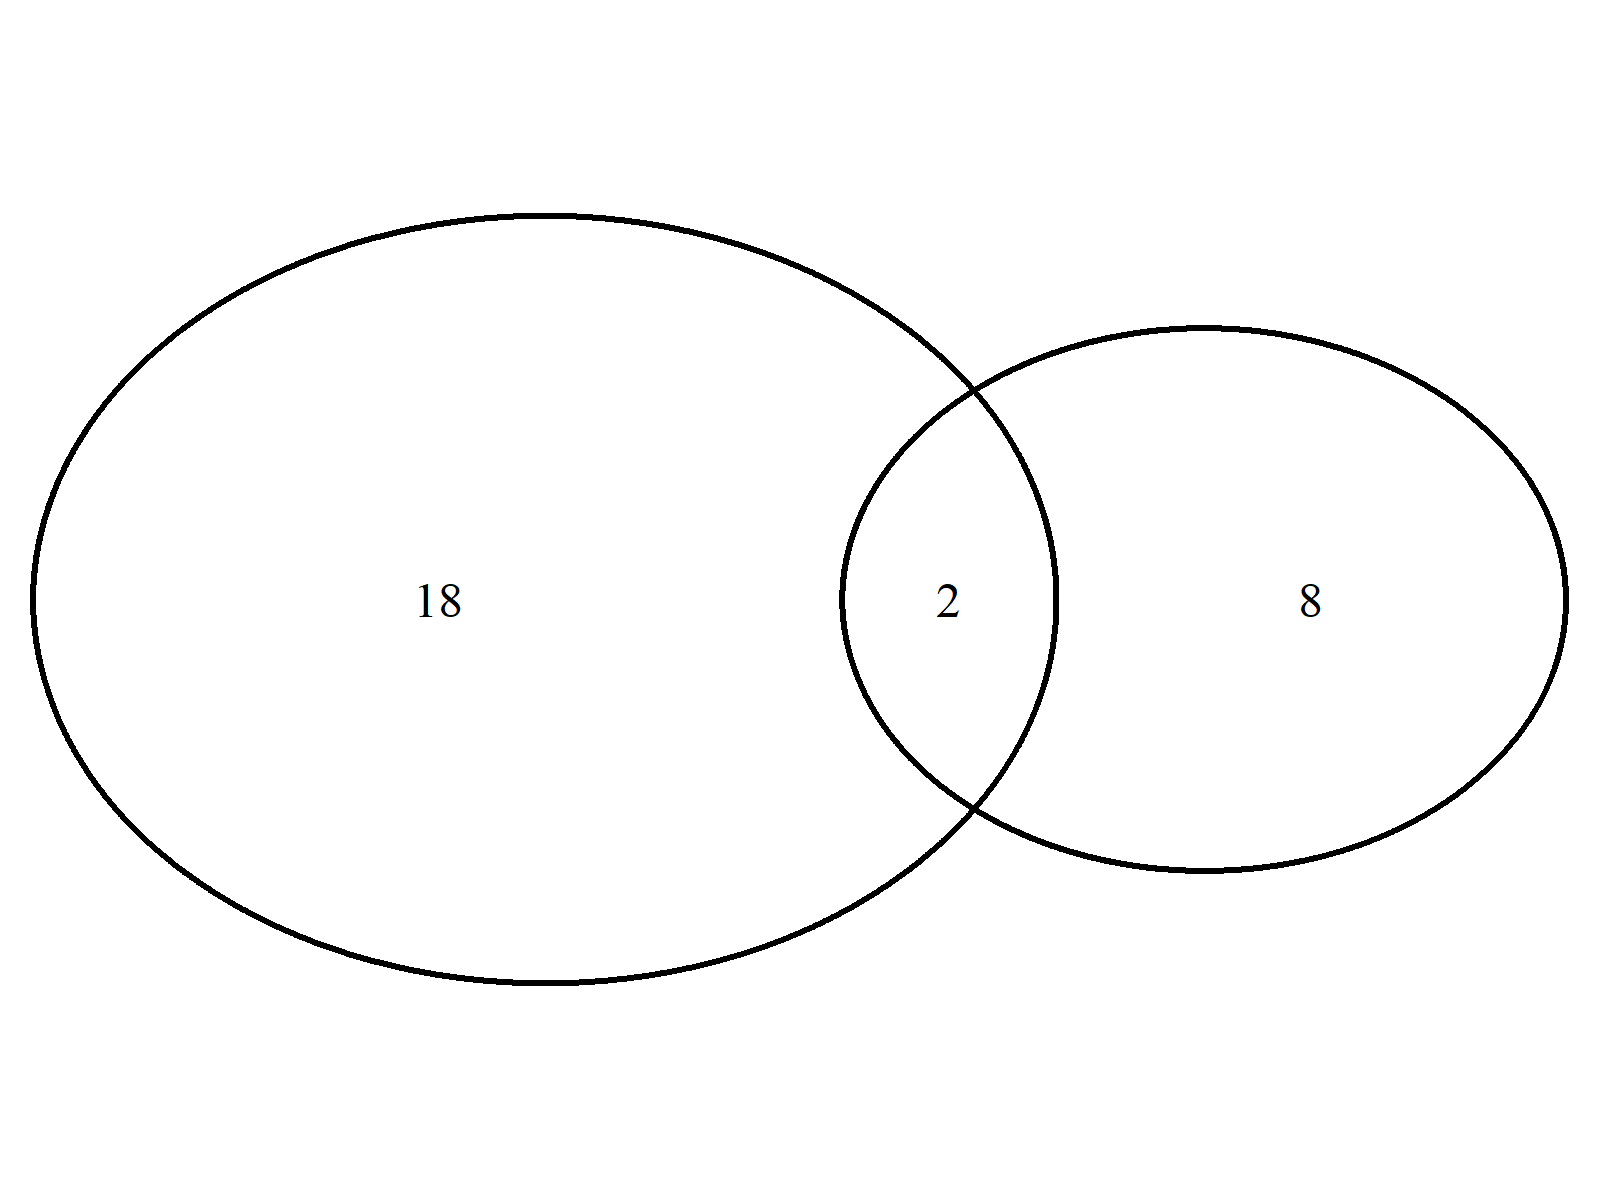 Venn Diagram Example 2